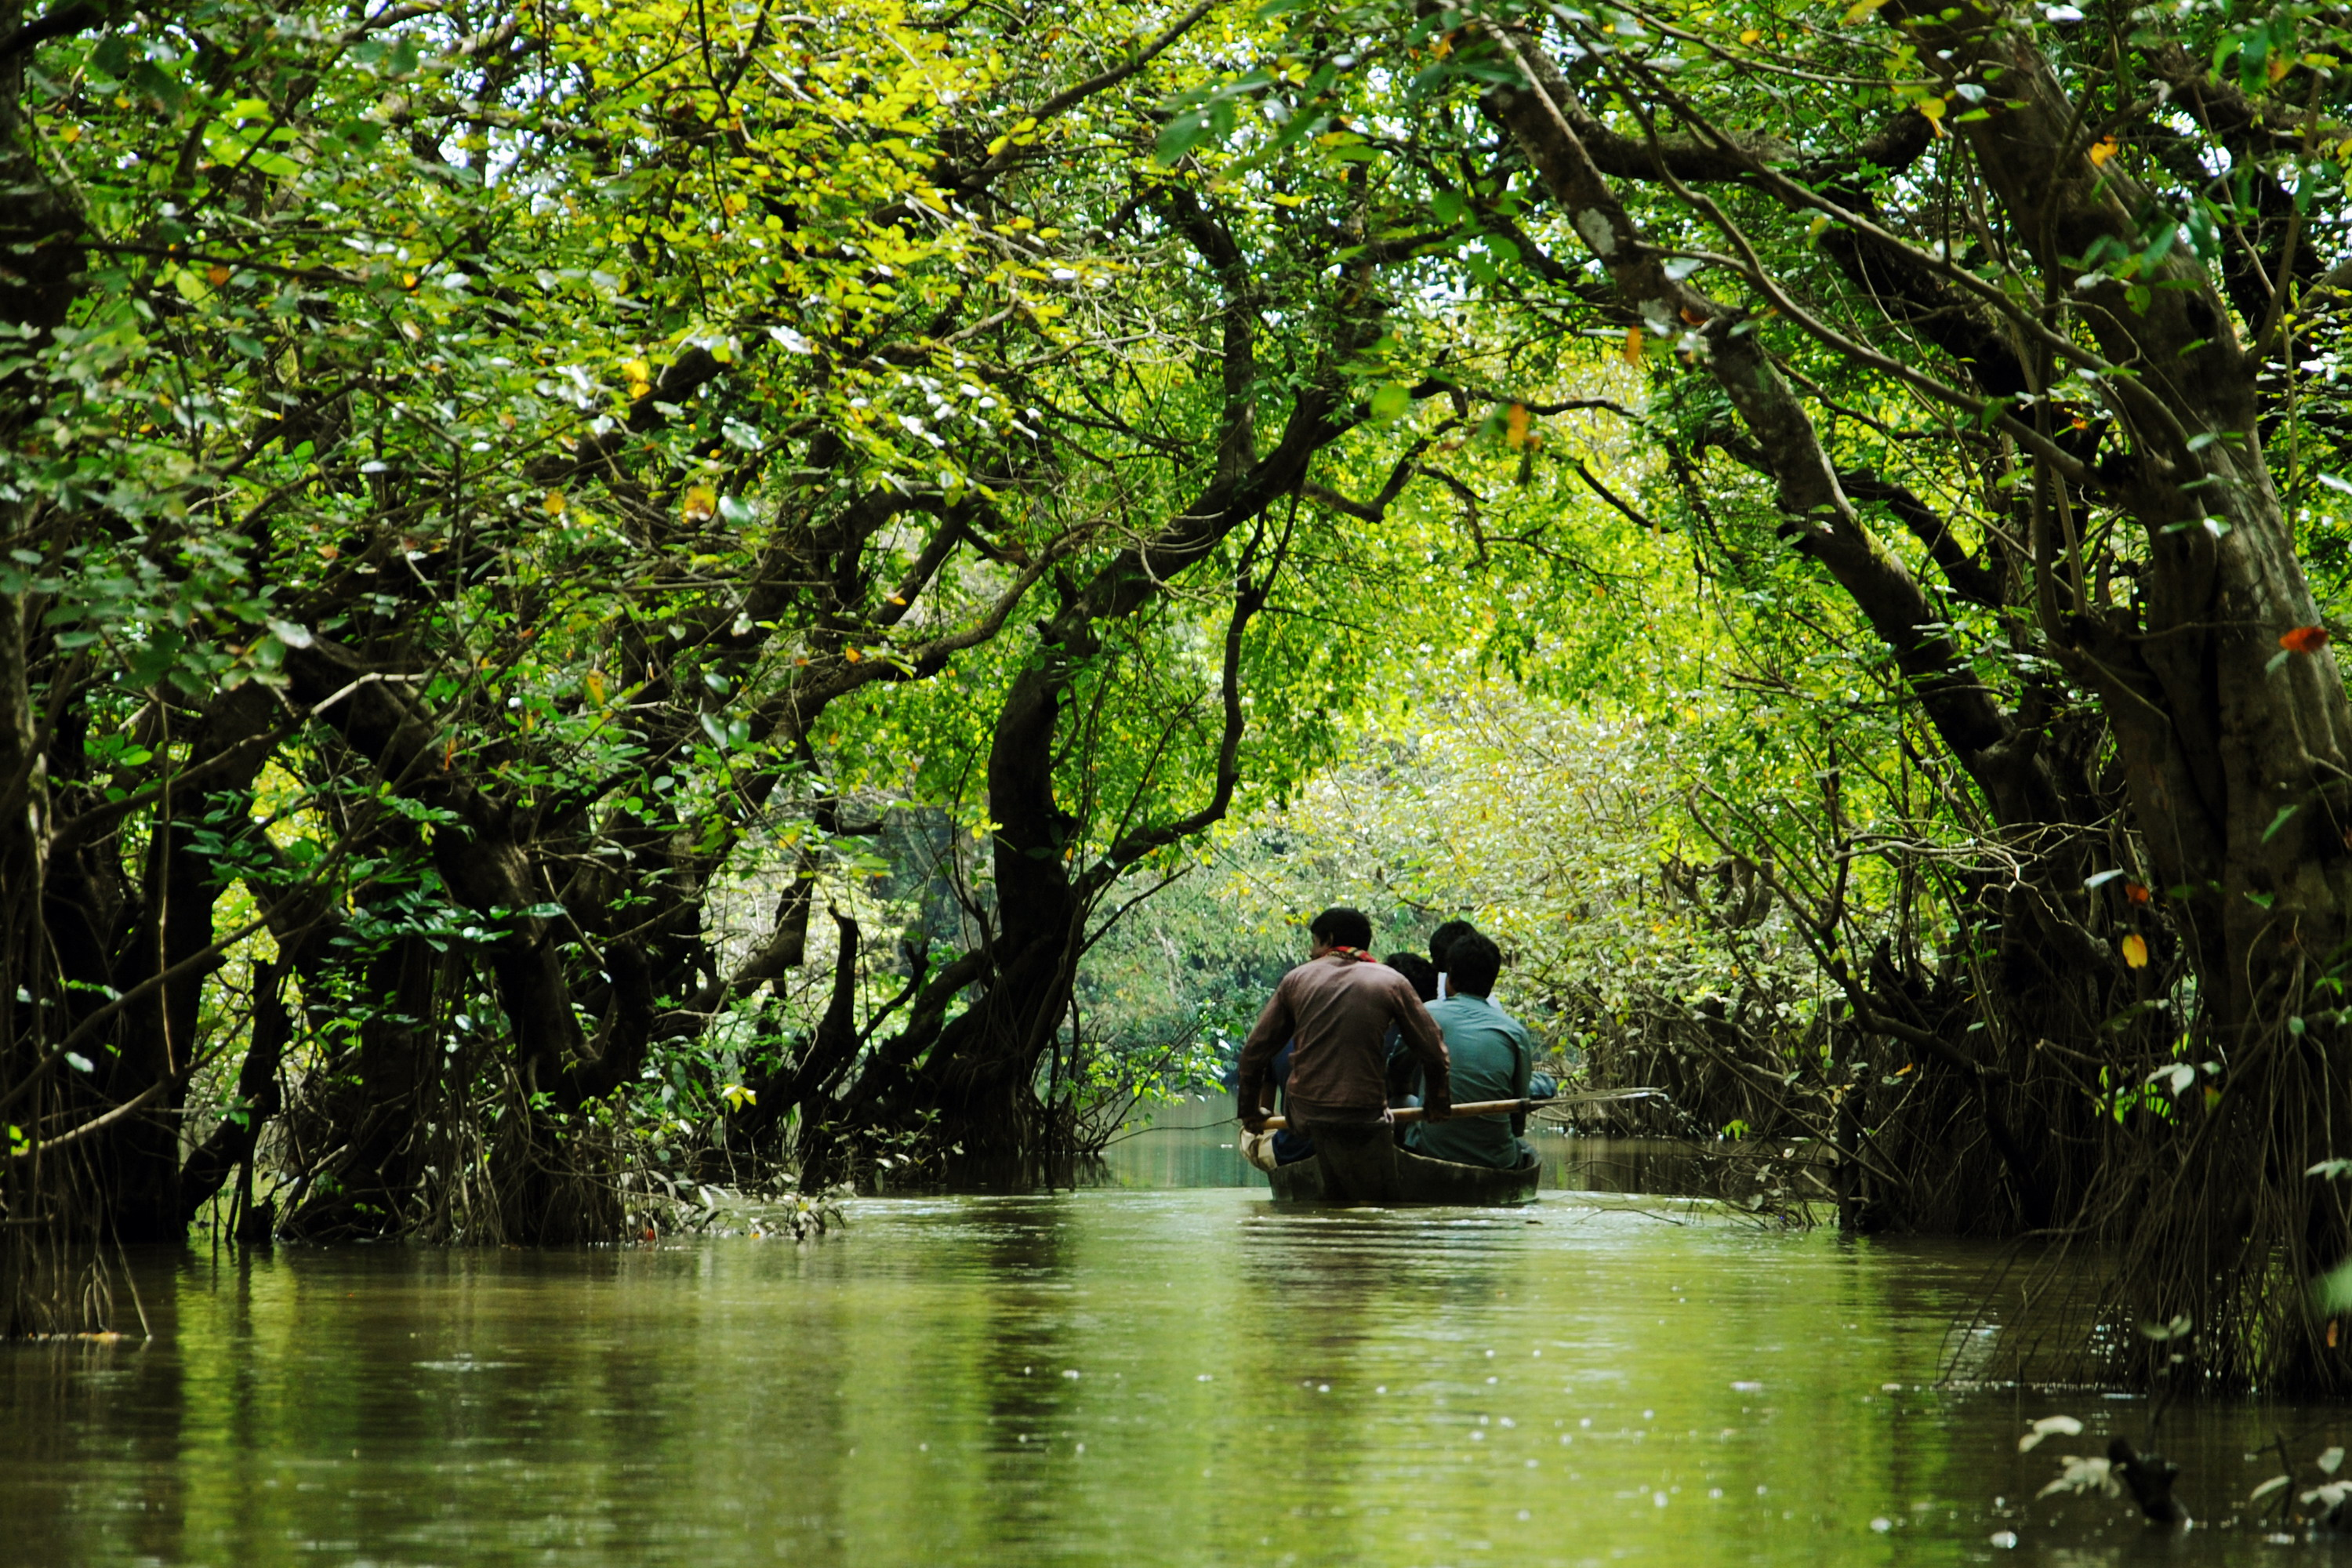 Ratargul Swamp forest in Bangladesh